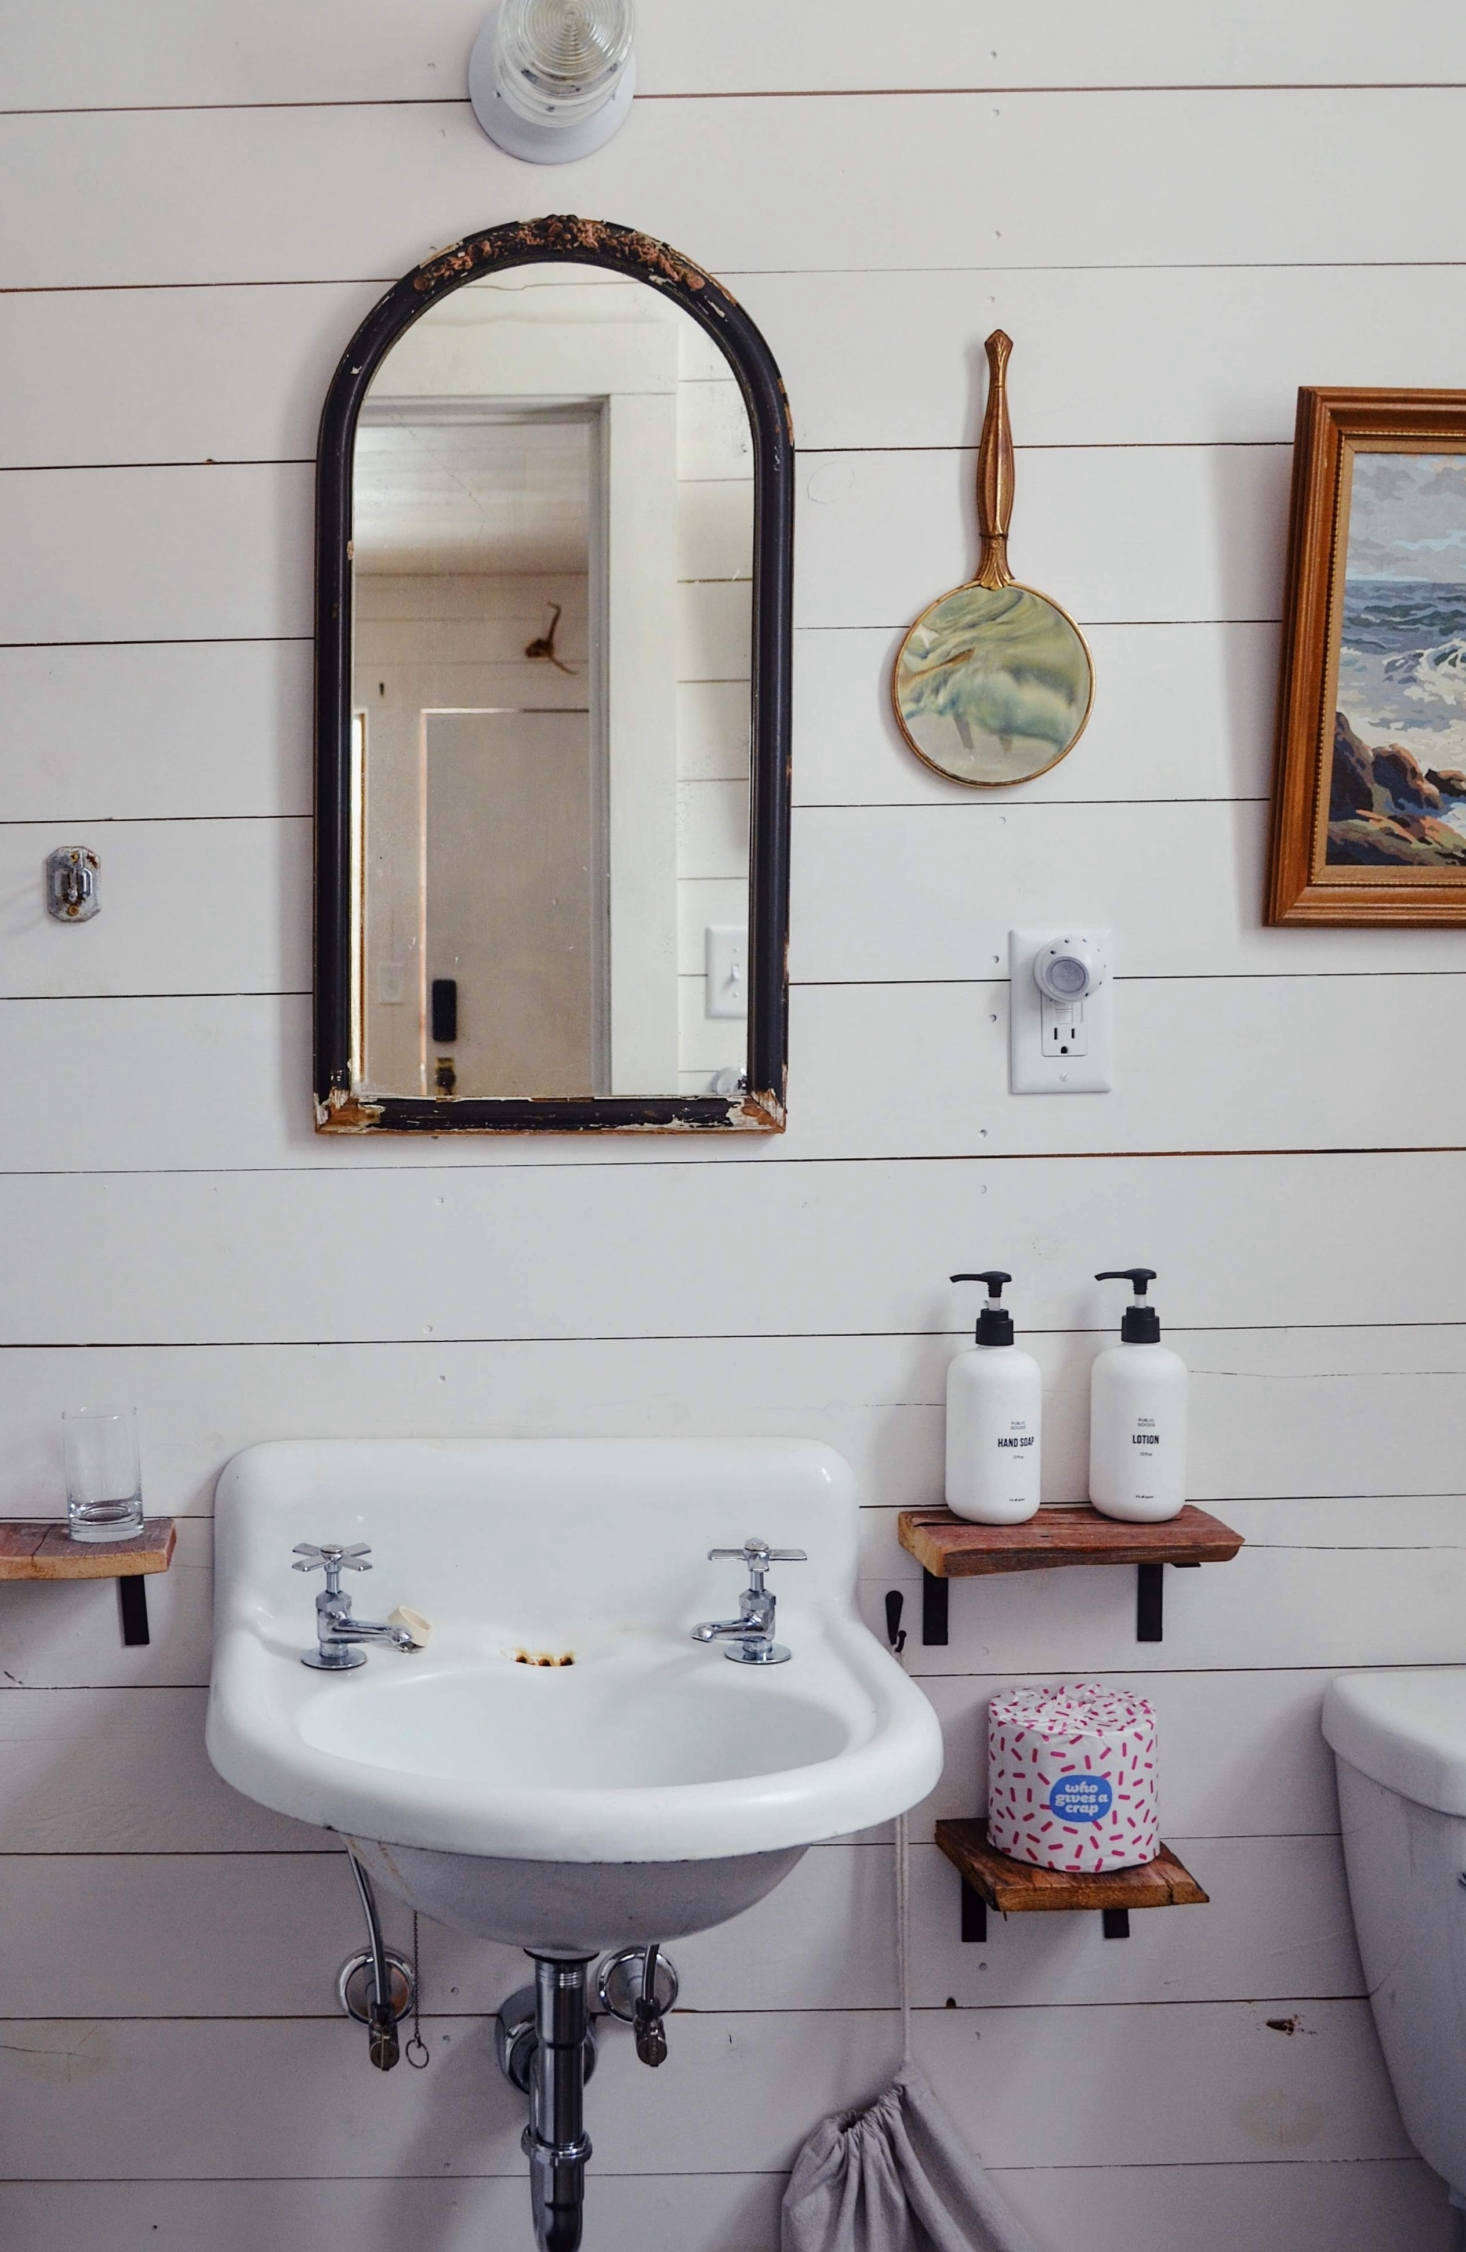 This adorable sink? It cost just $ on Craigslist. See more incredible bargains in Furnish Your Place on Craigslist:  Tips for the Discerning Bargain Hunter. Photograph courtesy of Red Rose Motel.